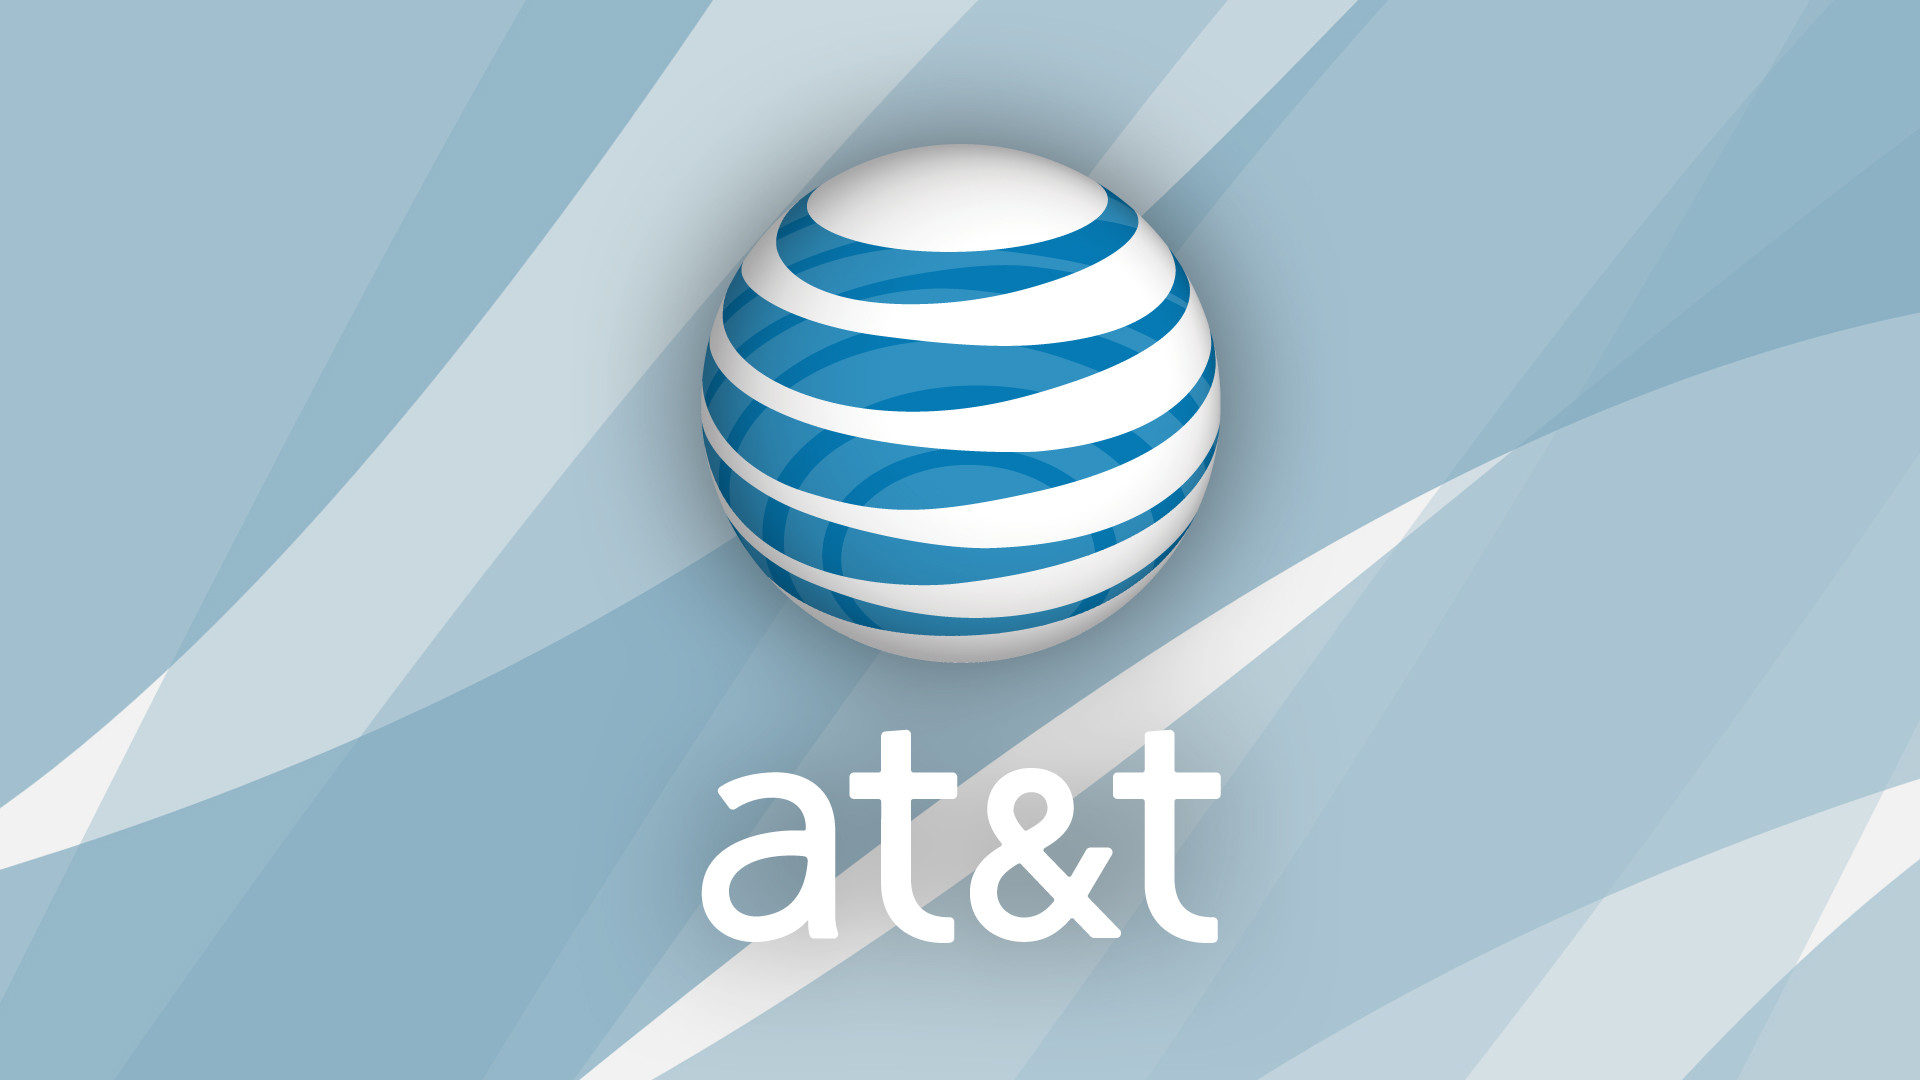 At&t Quote Att Wallpaper 57 Images